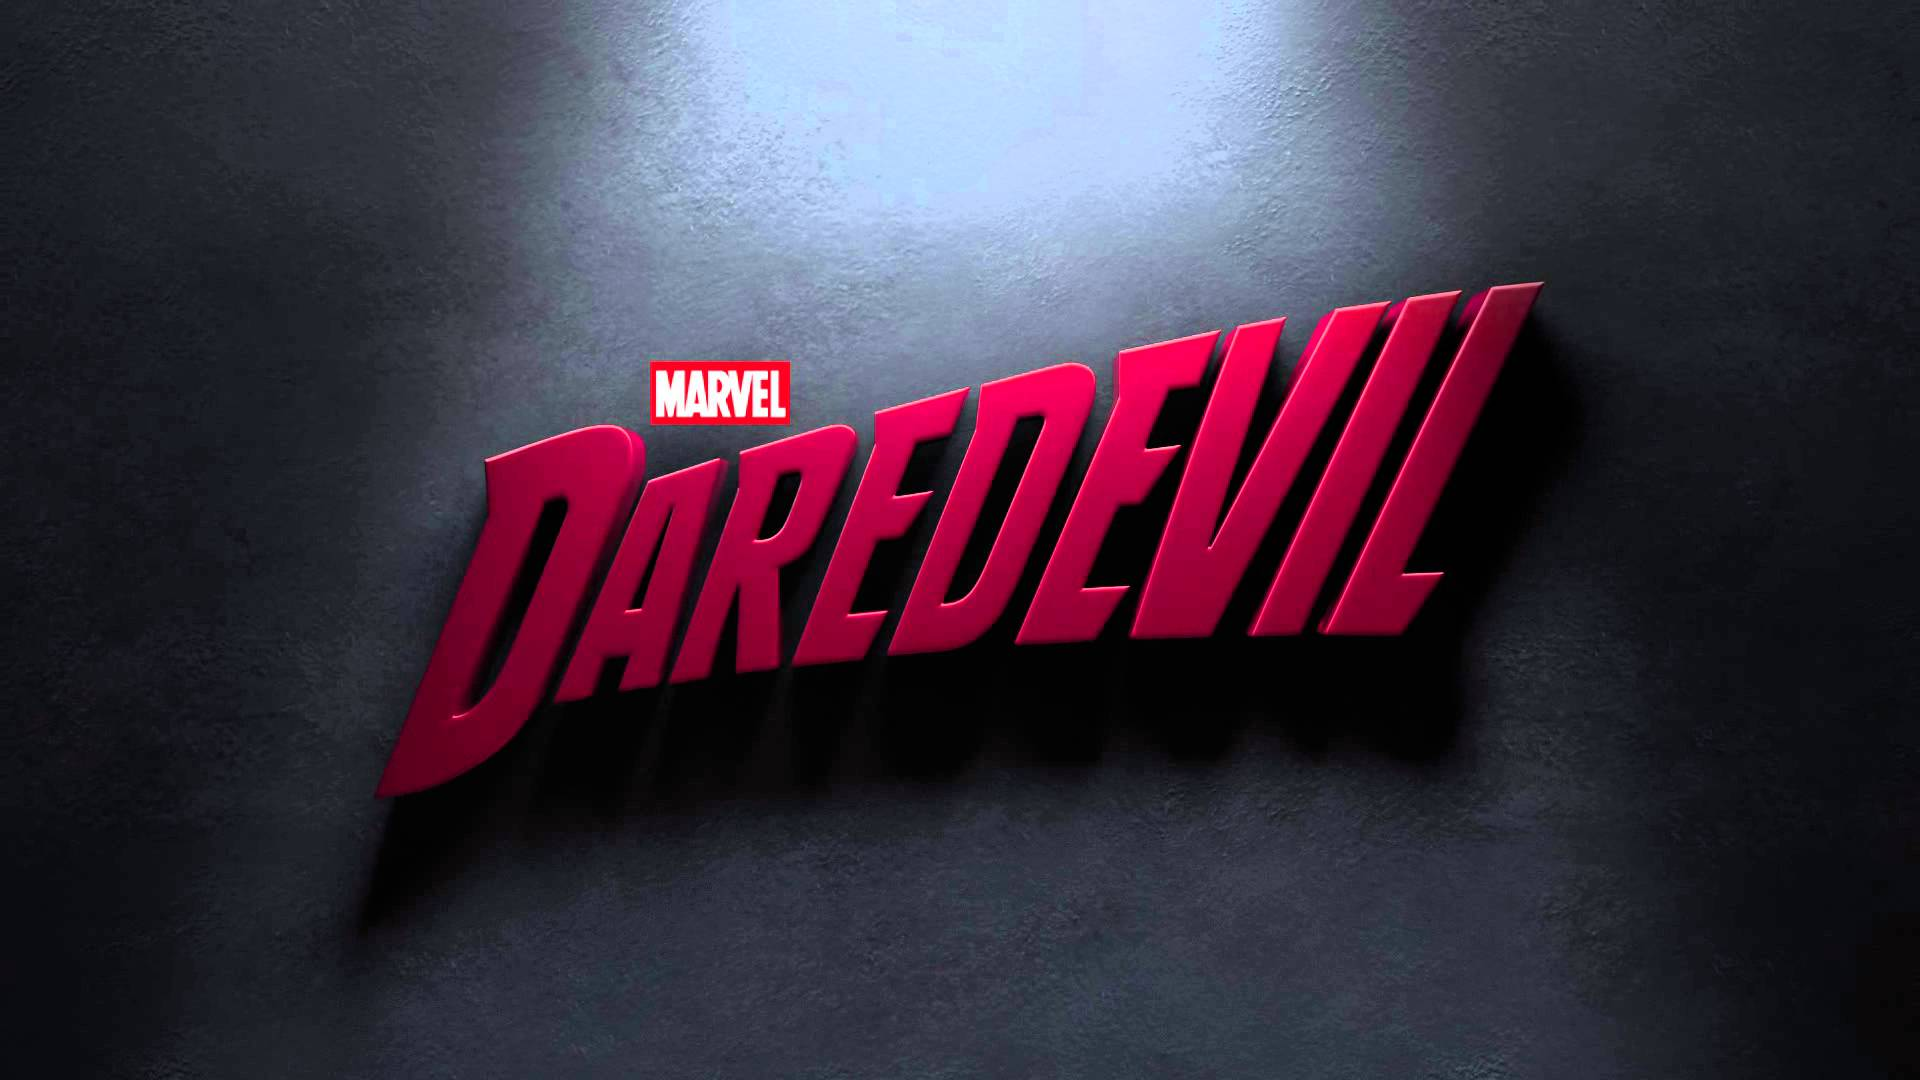 Marvel's 'Daredevil'